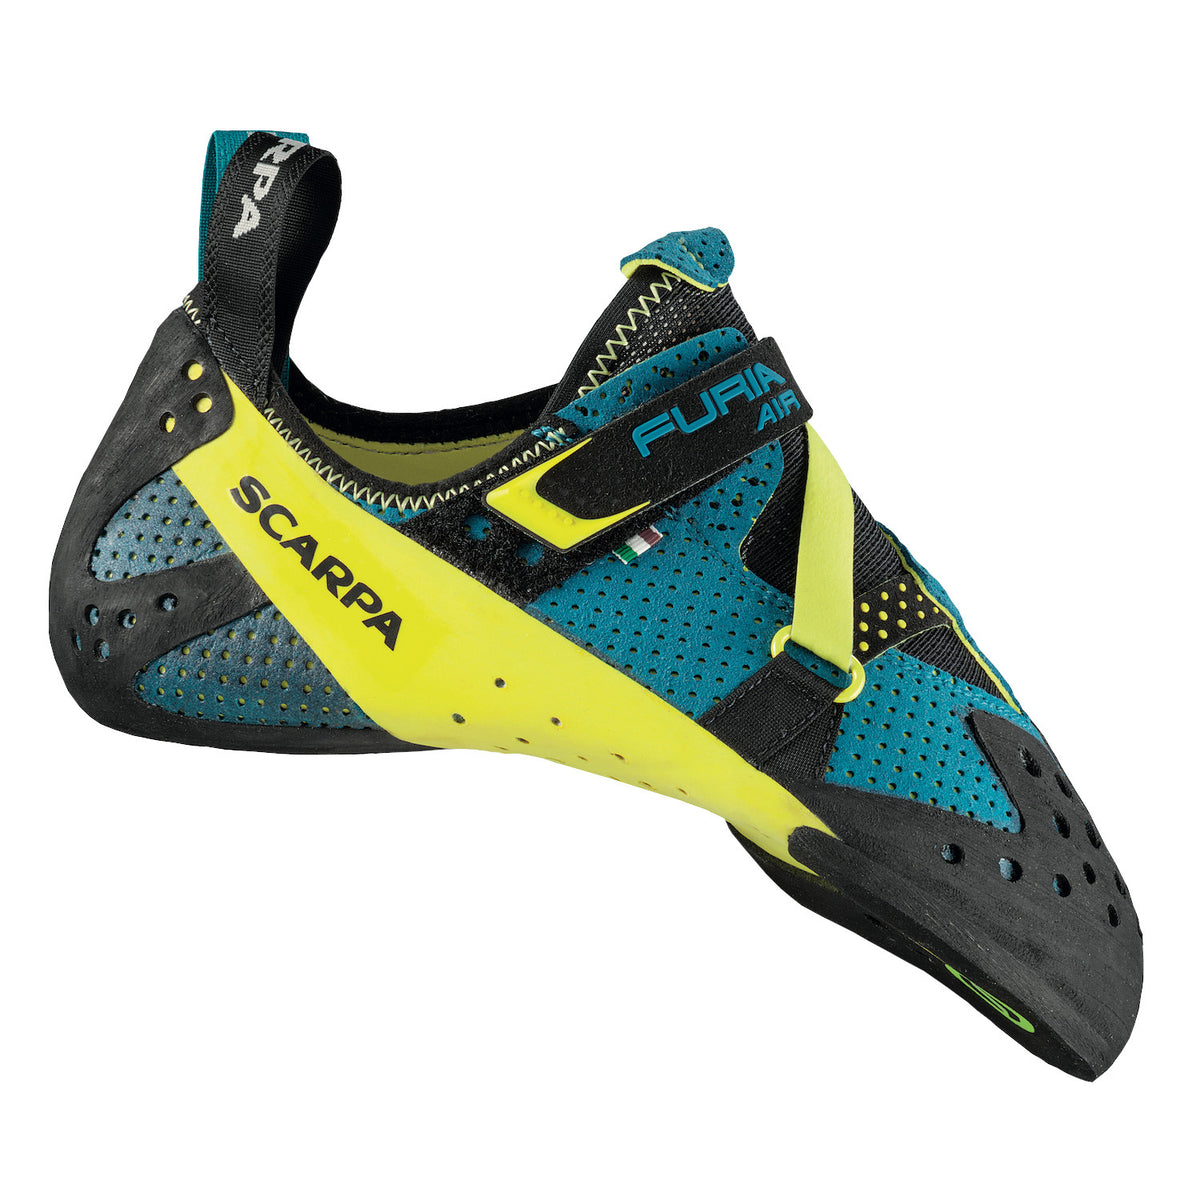 Scarpa Furia Air climbing shoes, outer side view